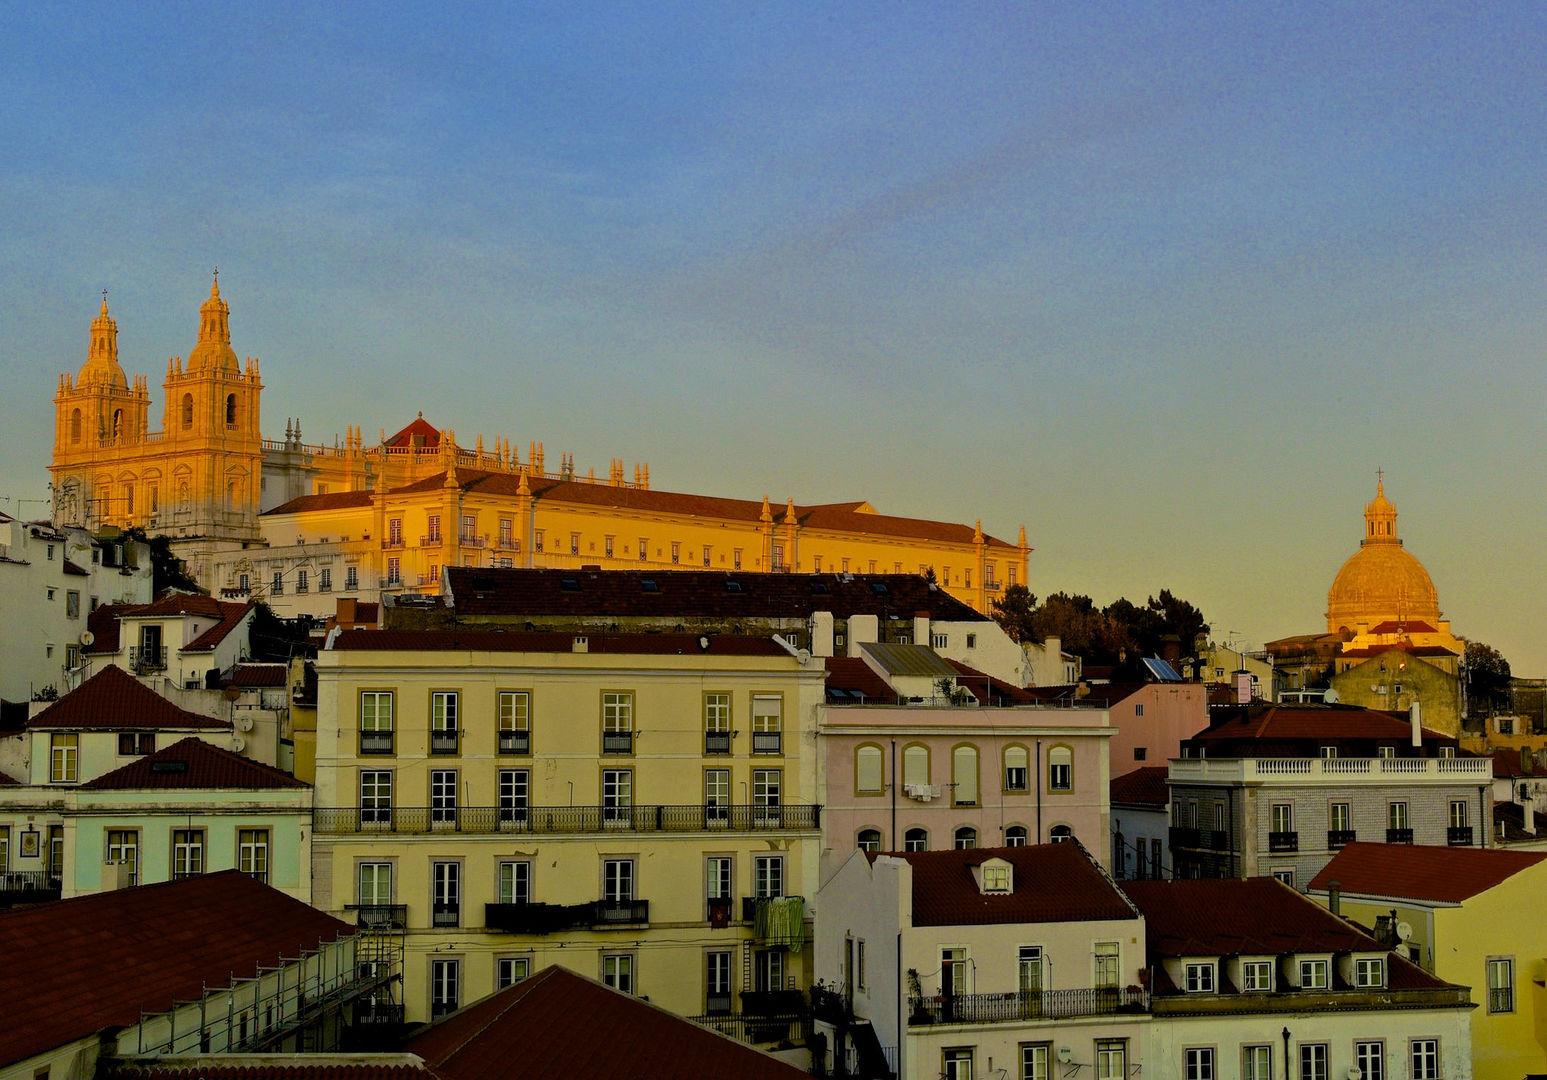 A Trip Back In Time: How People Talked About Best Places To Visit In Portugal 20 Years Ago